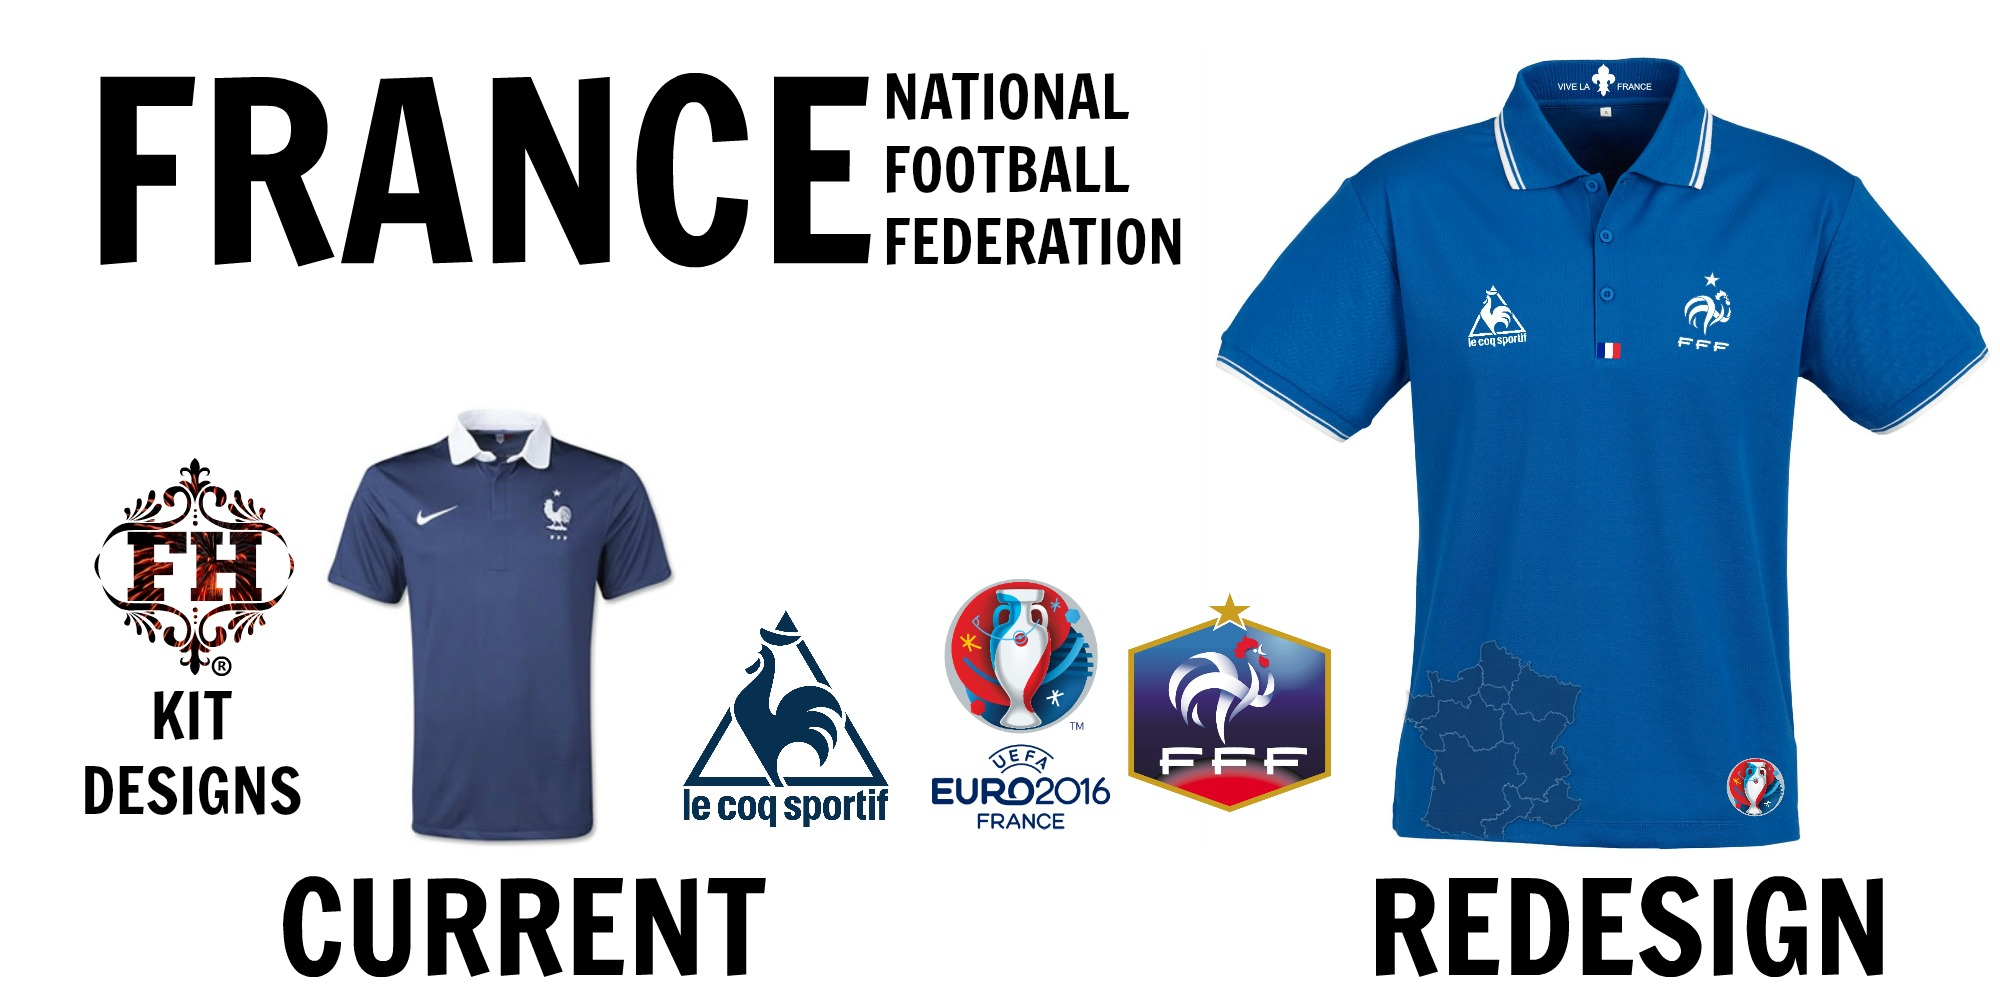 online retailer f1e8a 9a9d5 New French National Kit By Le Coq Sportif (for 2016)